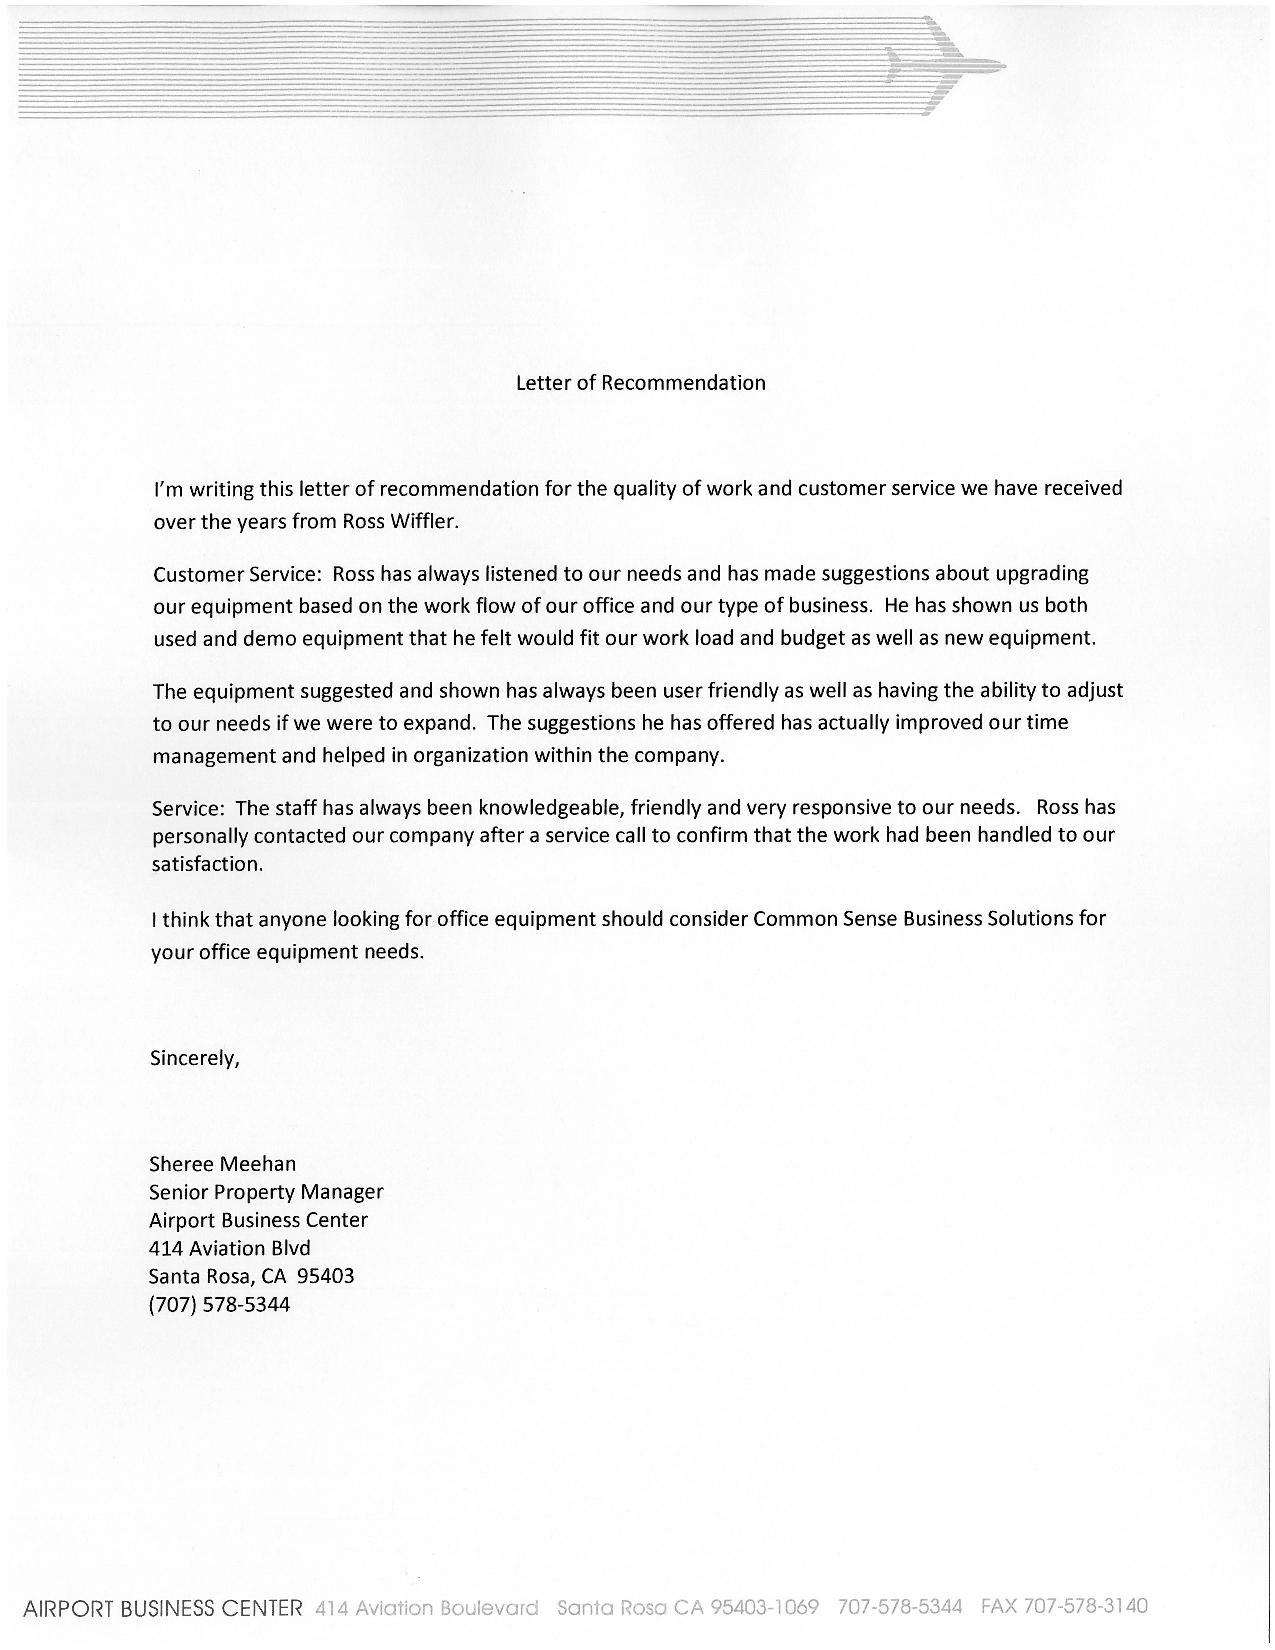 Testimonial template for business miller construction co airport business center testimonial letter page 001 common sense wajeb Images